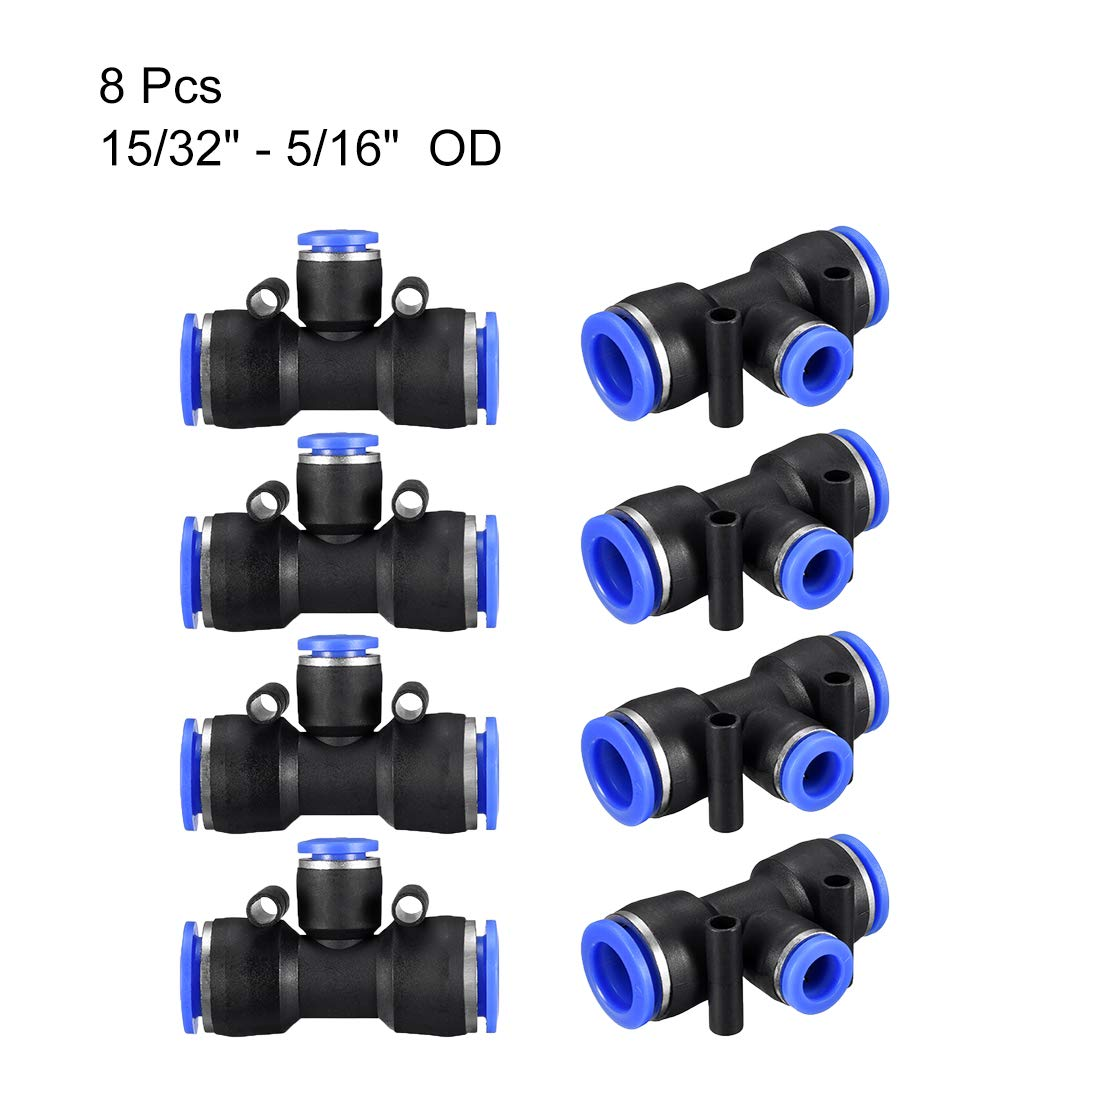 uxcell Plastic Tee Push to Connect Tube Fittings 15//32-25//64 od Push Lock Blue 12-10mm 8pcs